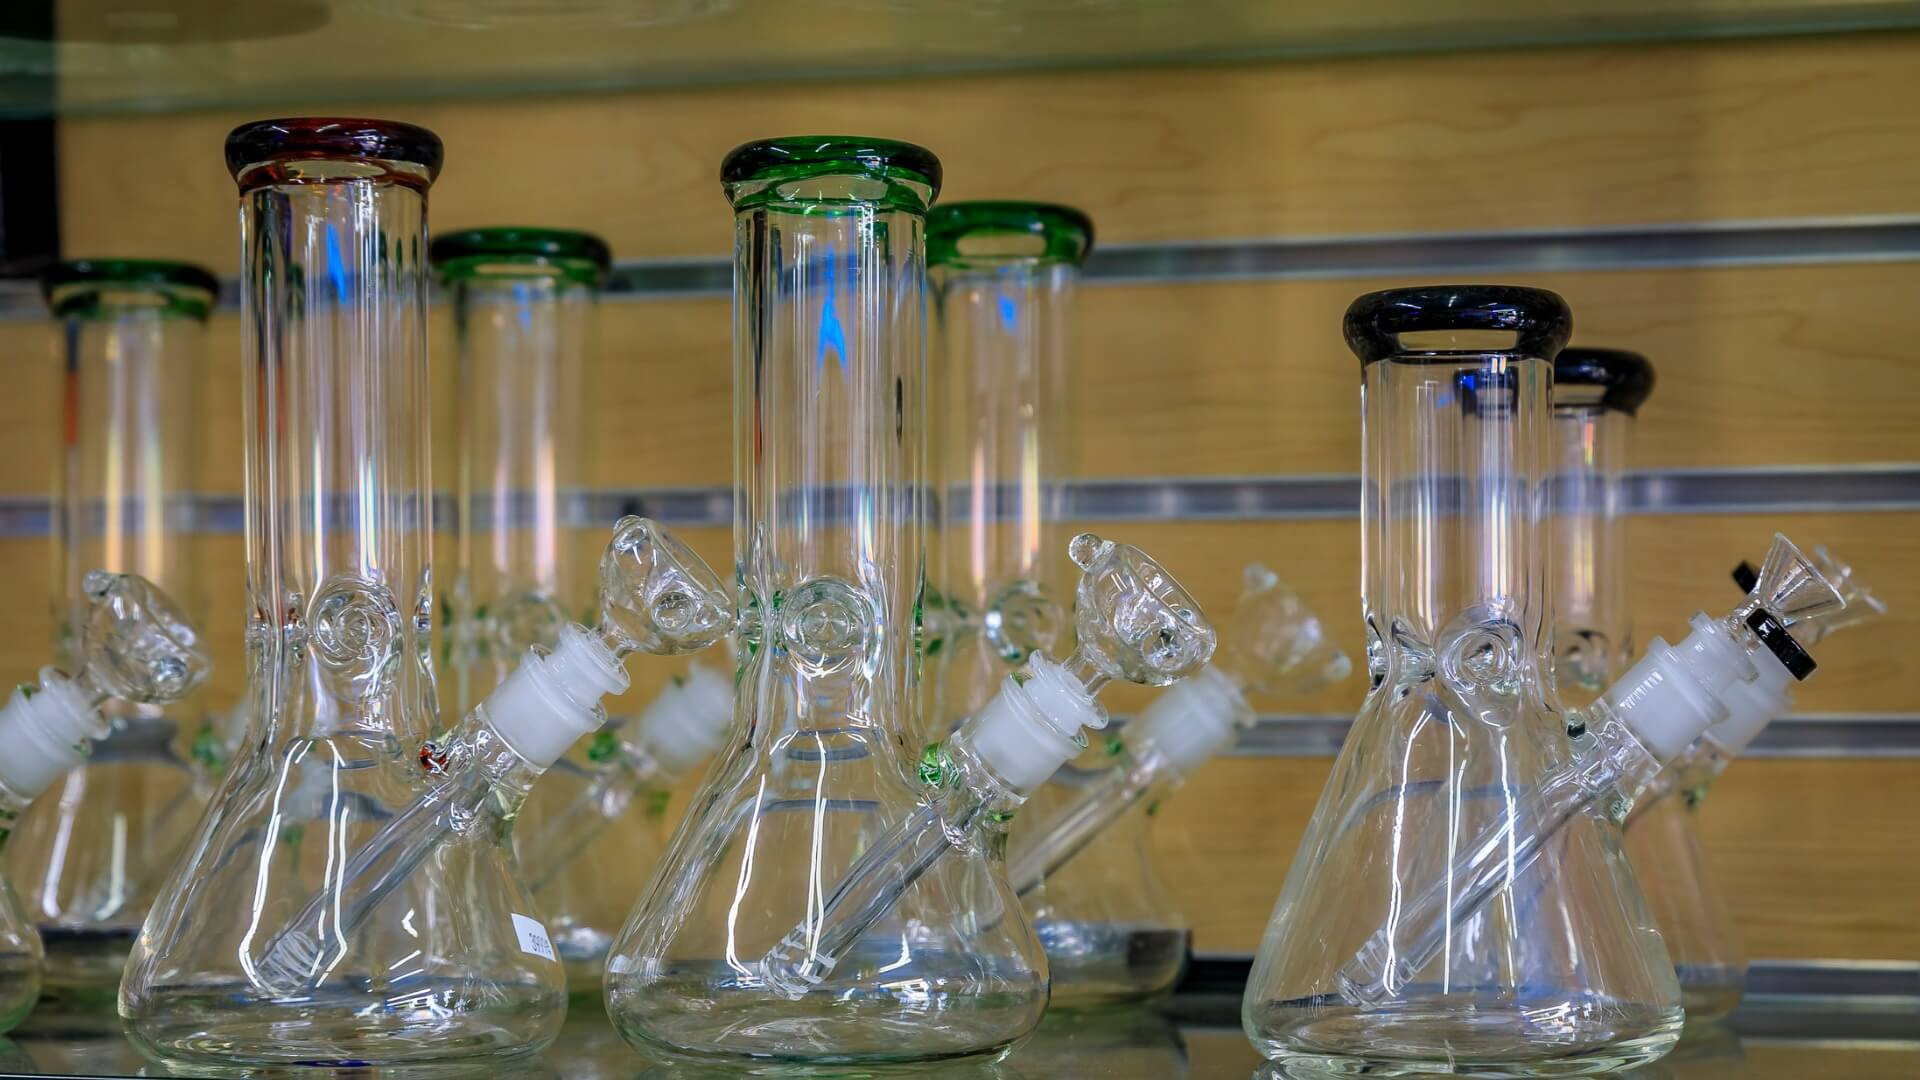 rows of glass bongs